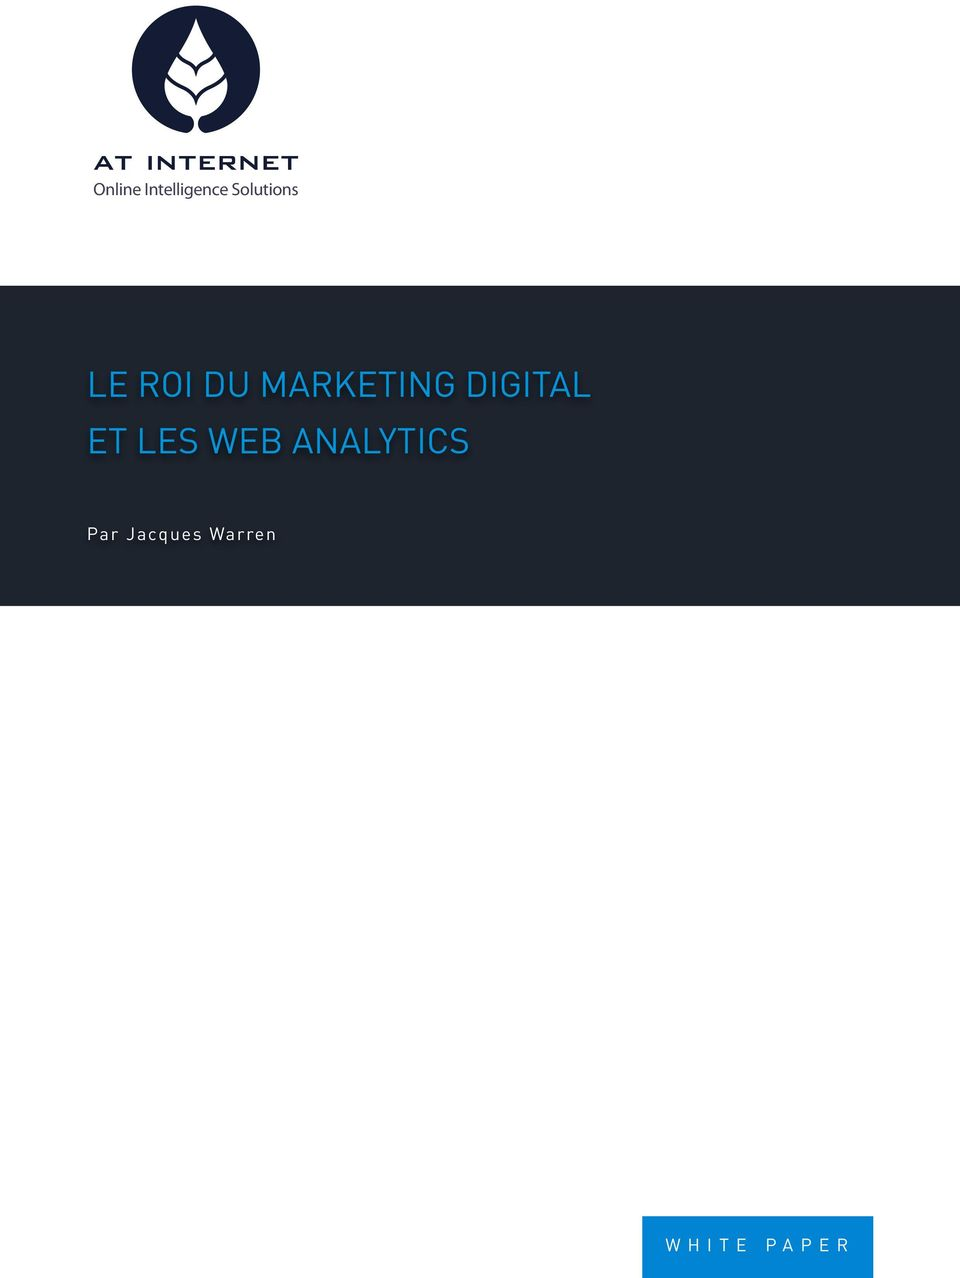 marketing digital et les